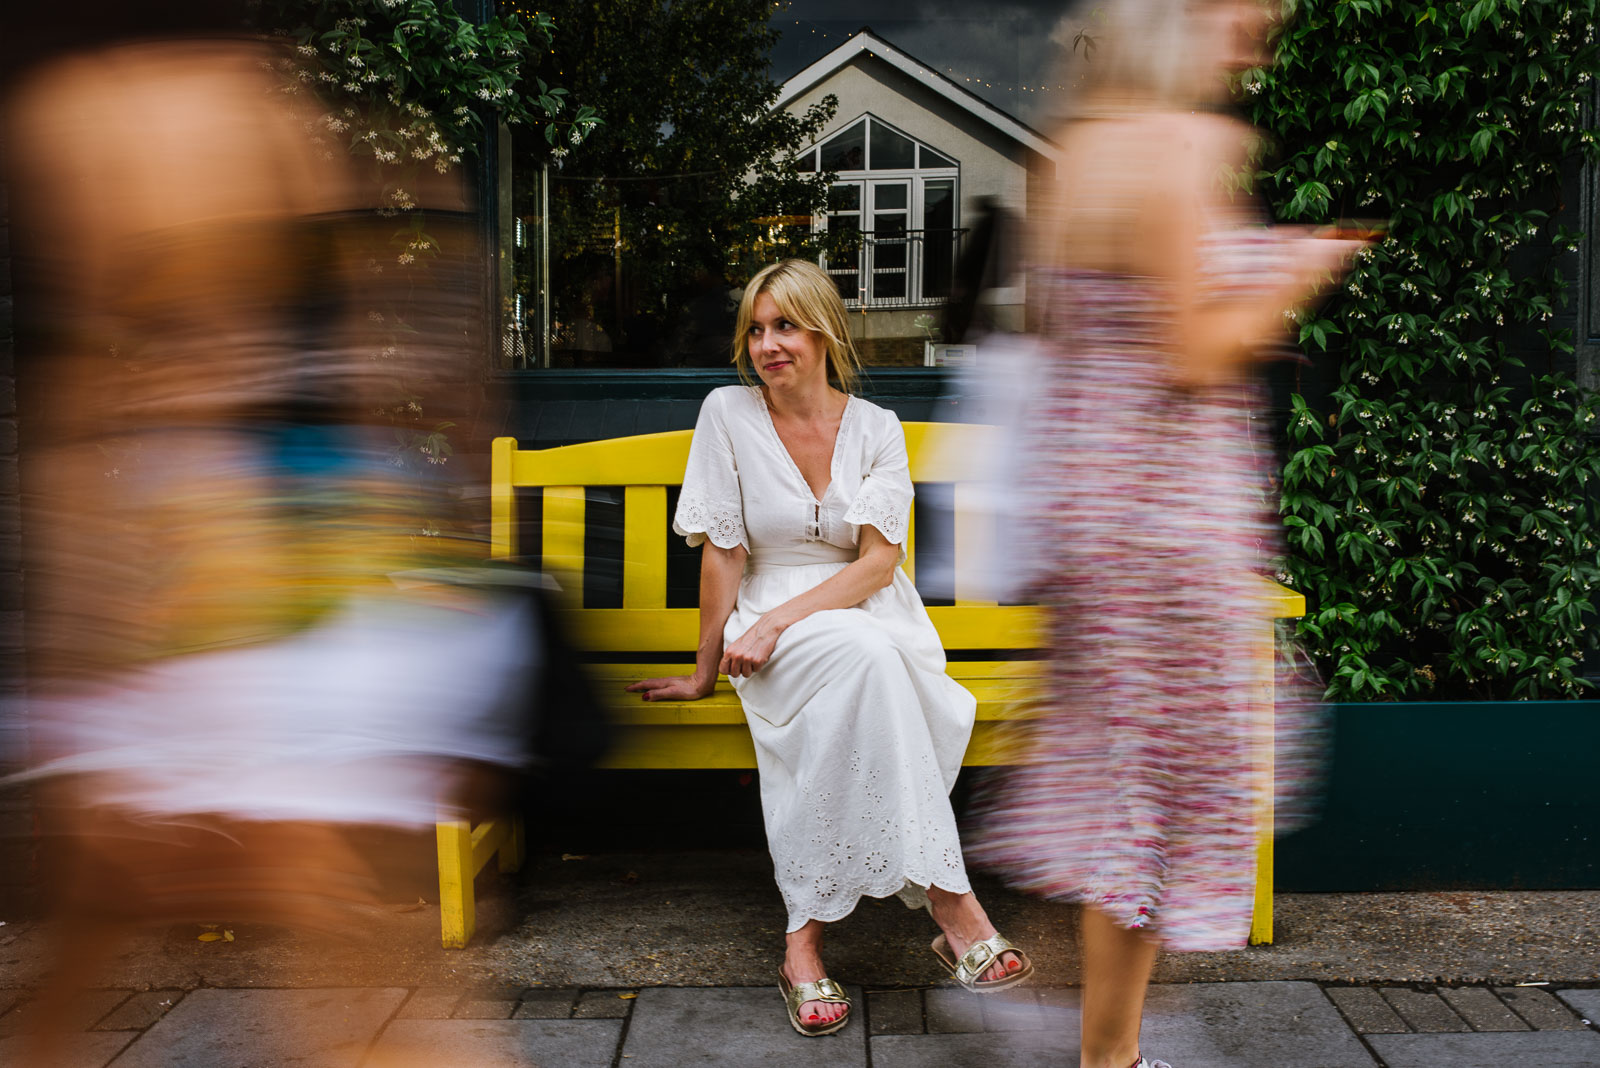 Motion blur of a woman still on a bench while people walk by